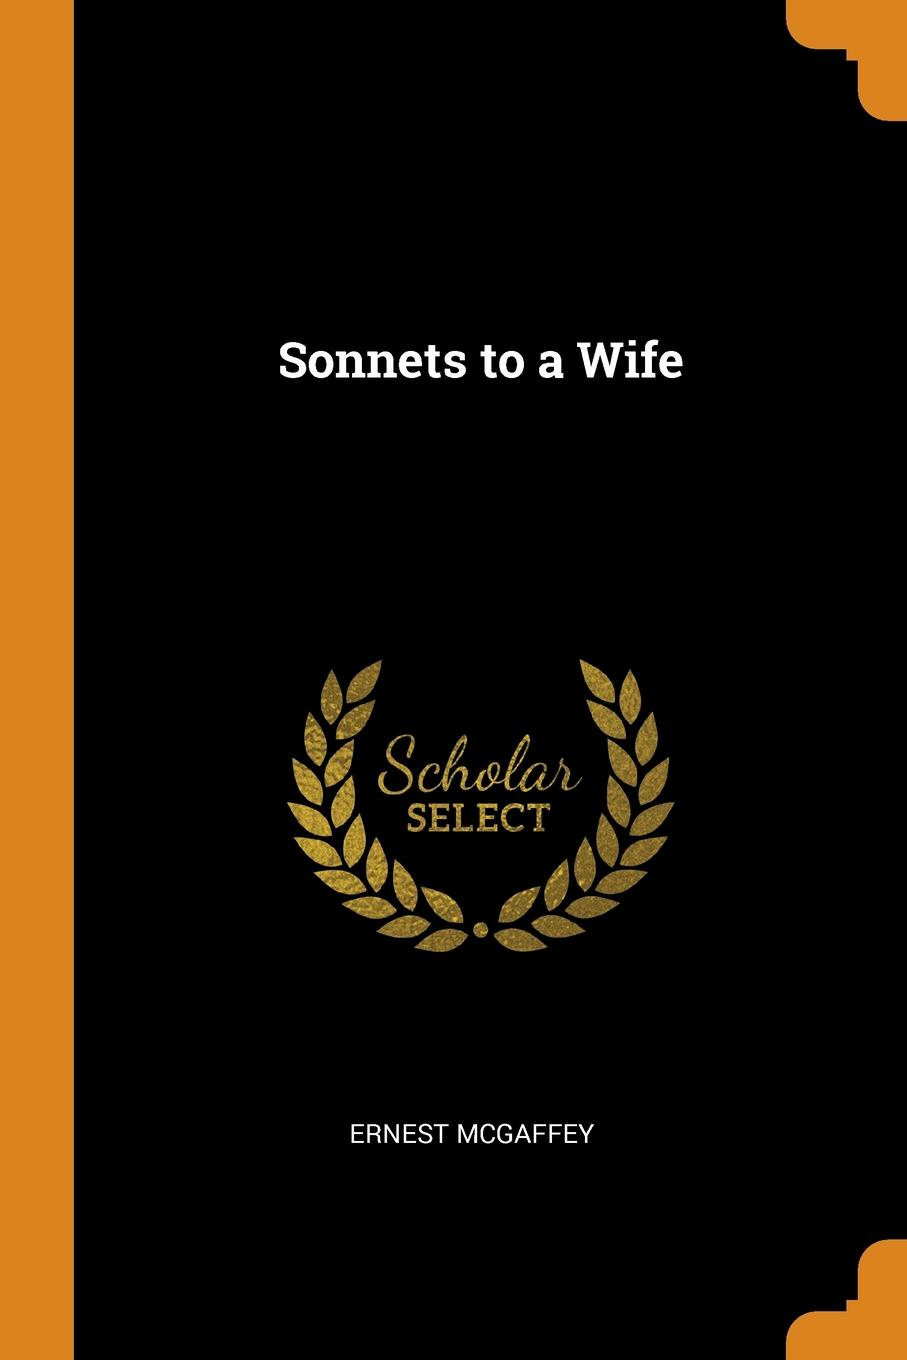 Ernest McGaffey Sonnets to a Wife